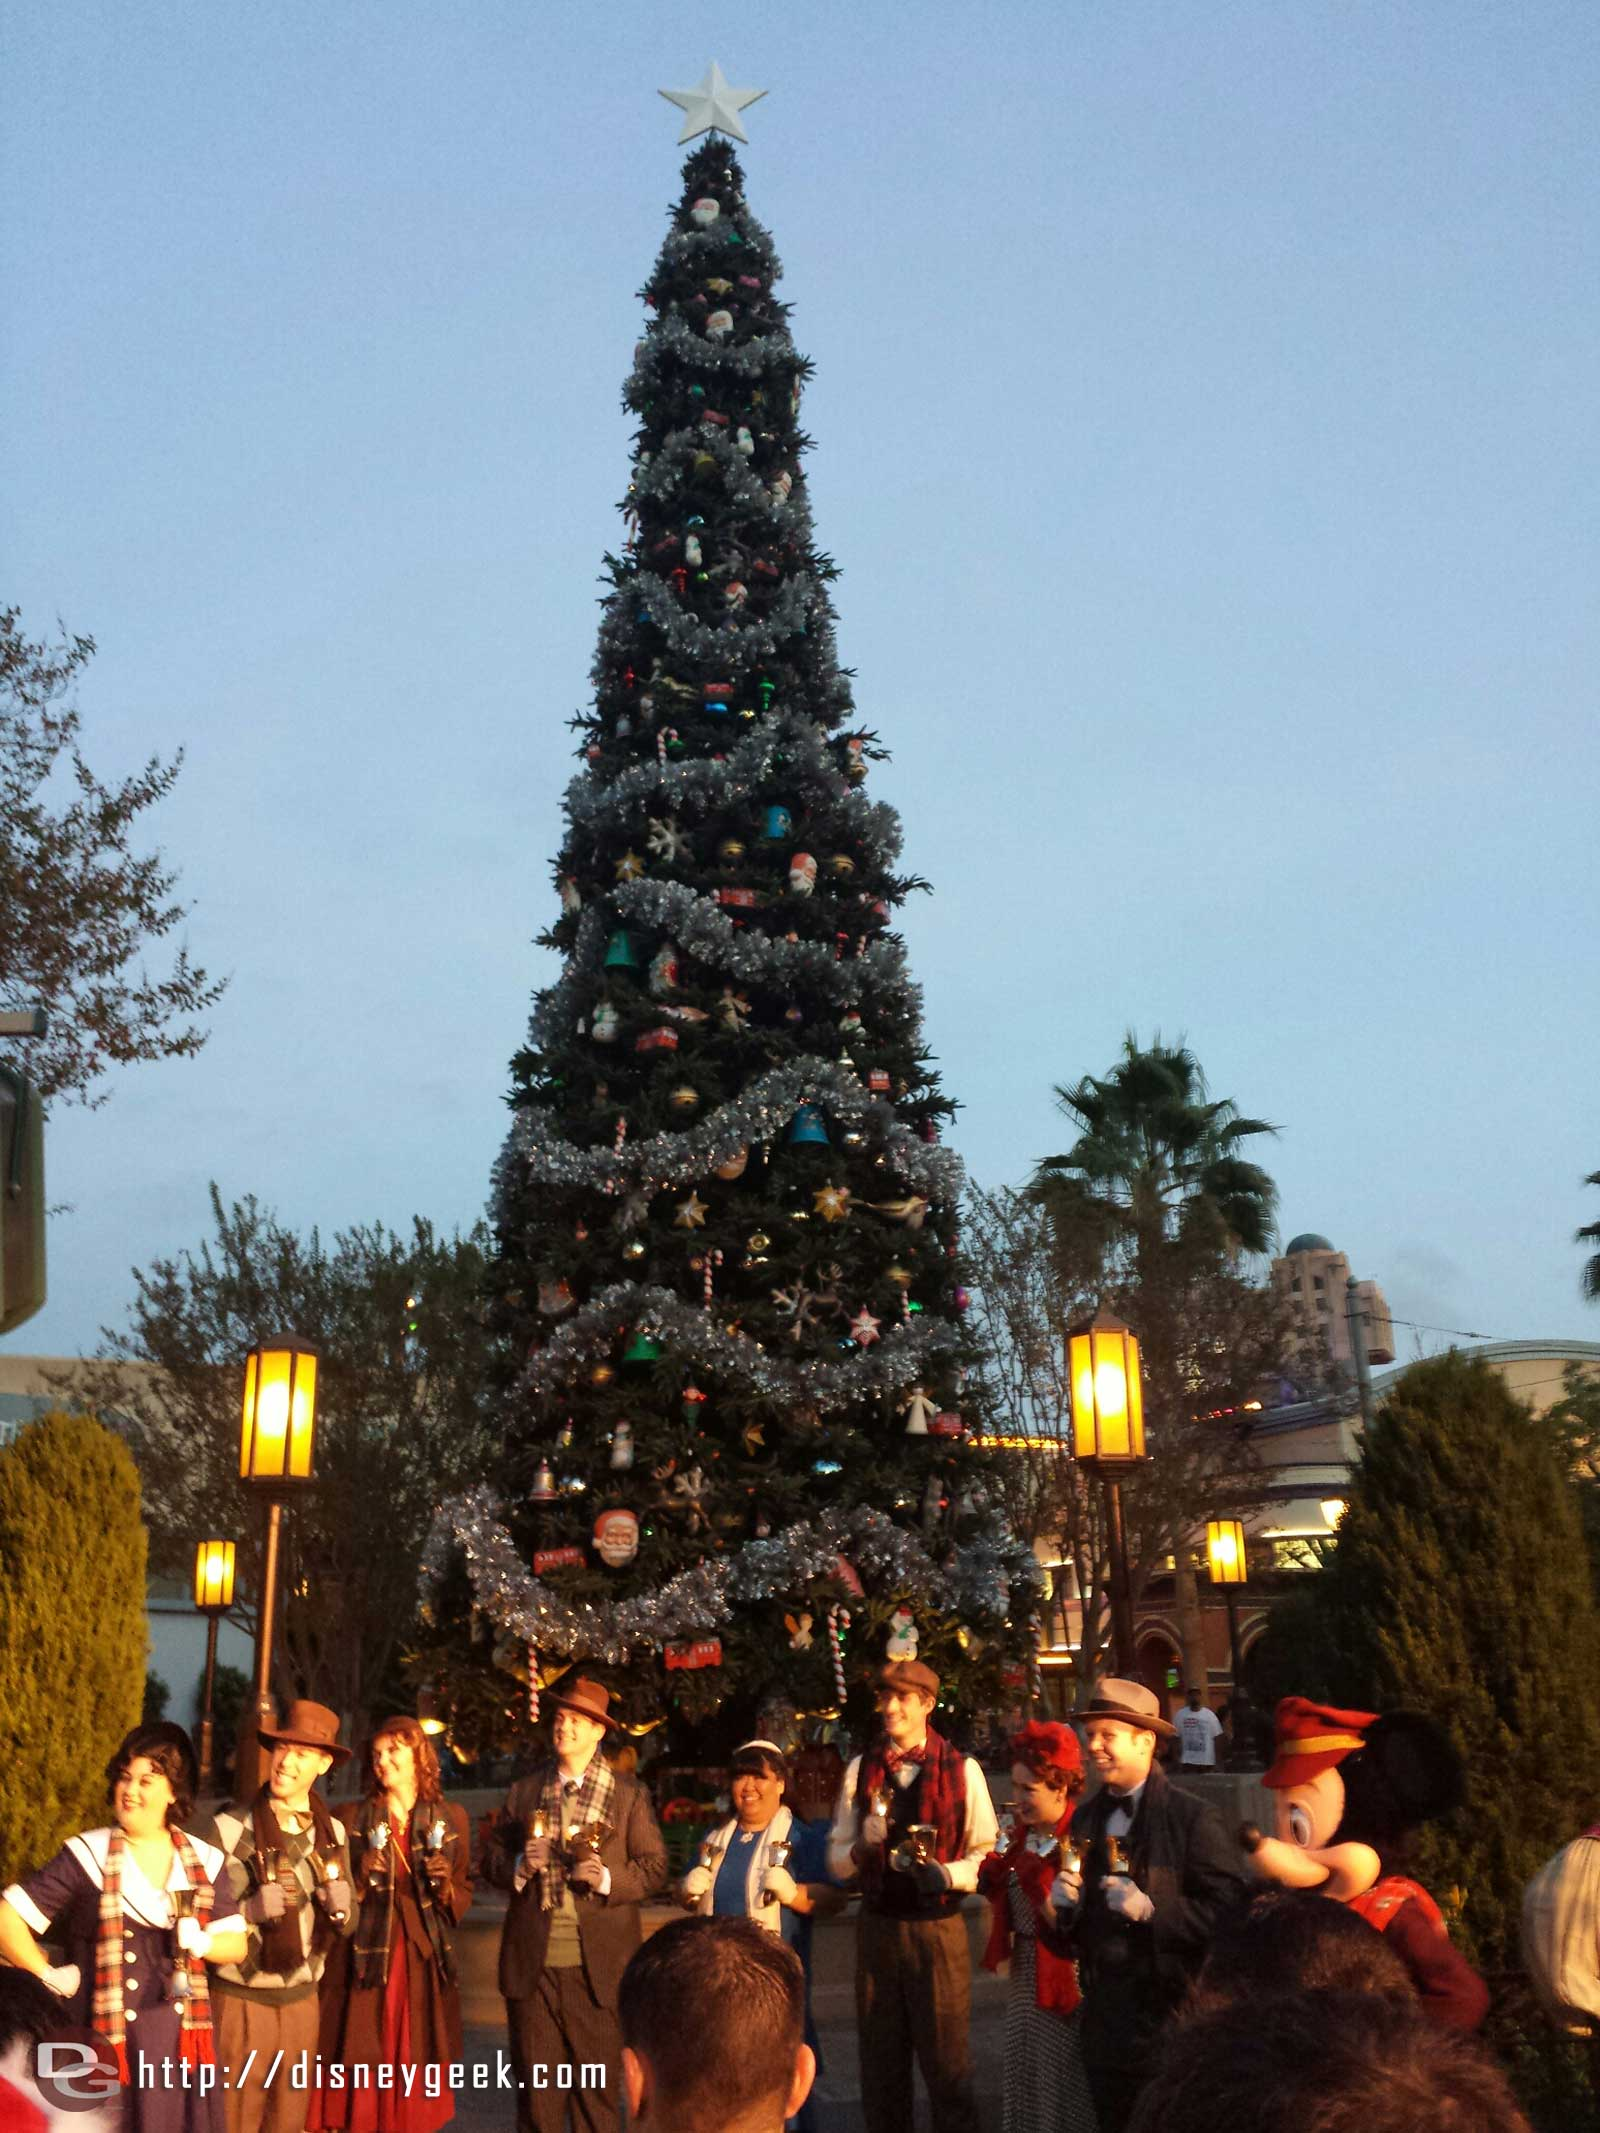 #BuenaVistaStreet Tree Lighting, the citizens of Buena Vista Street, bell ringers and characters assemble at the tree